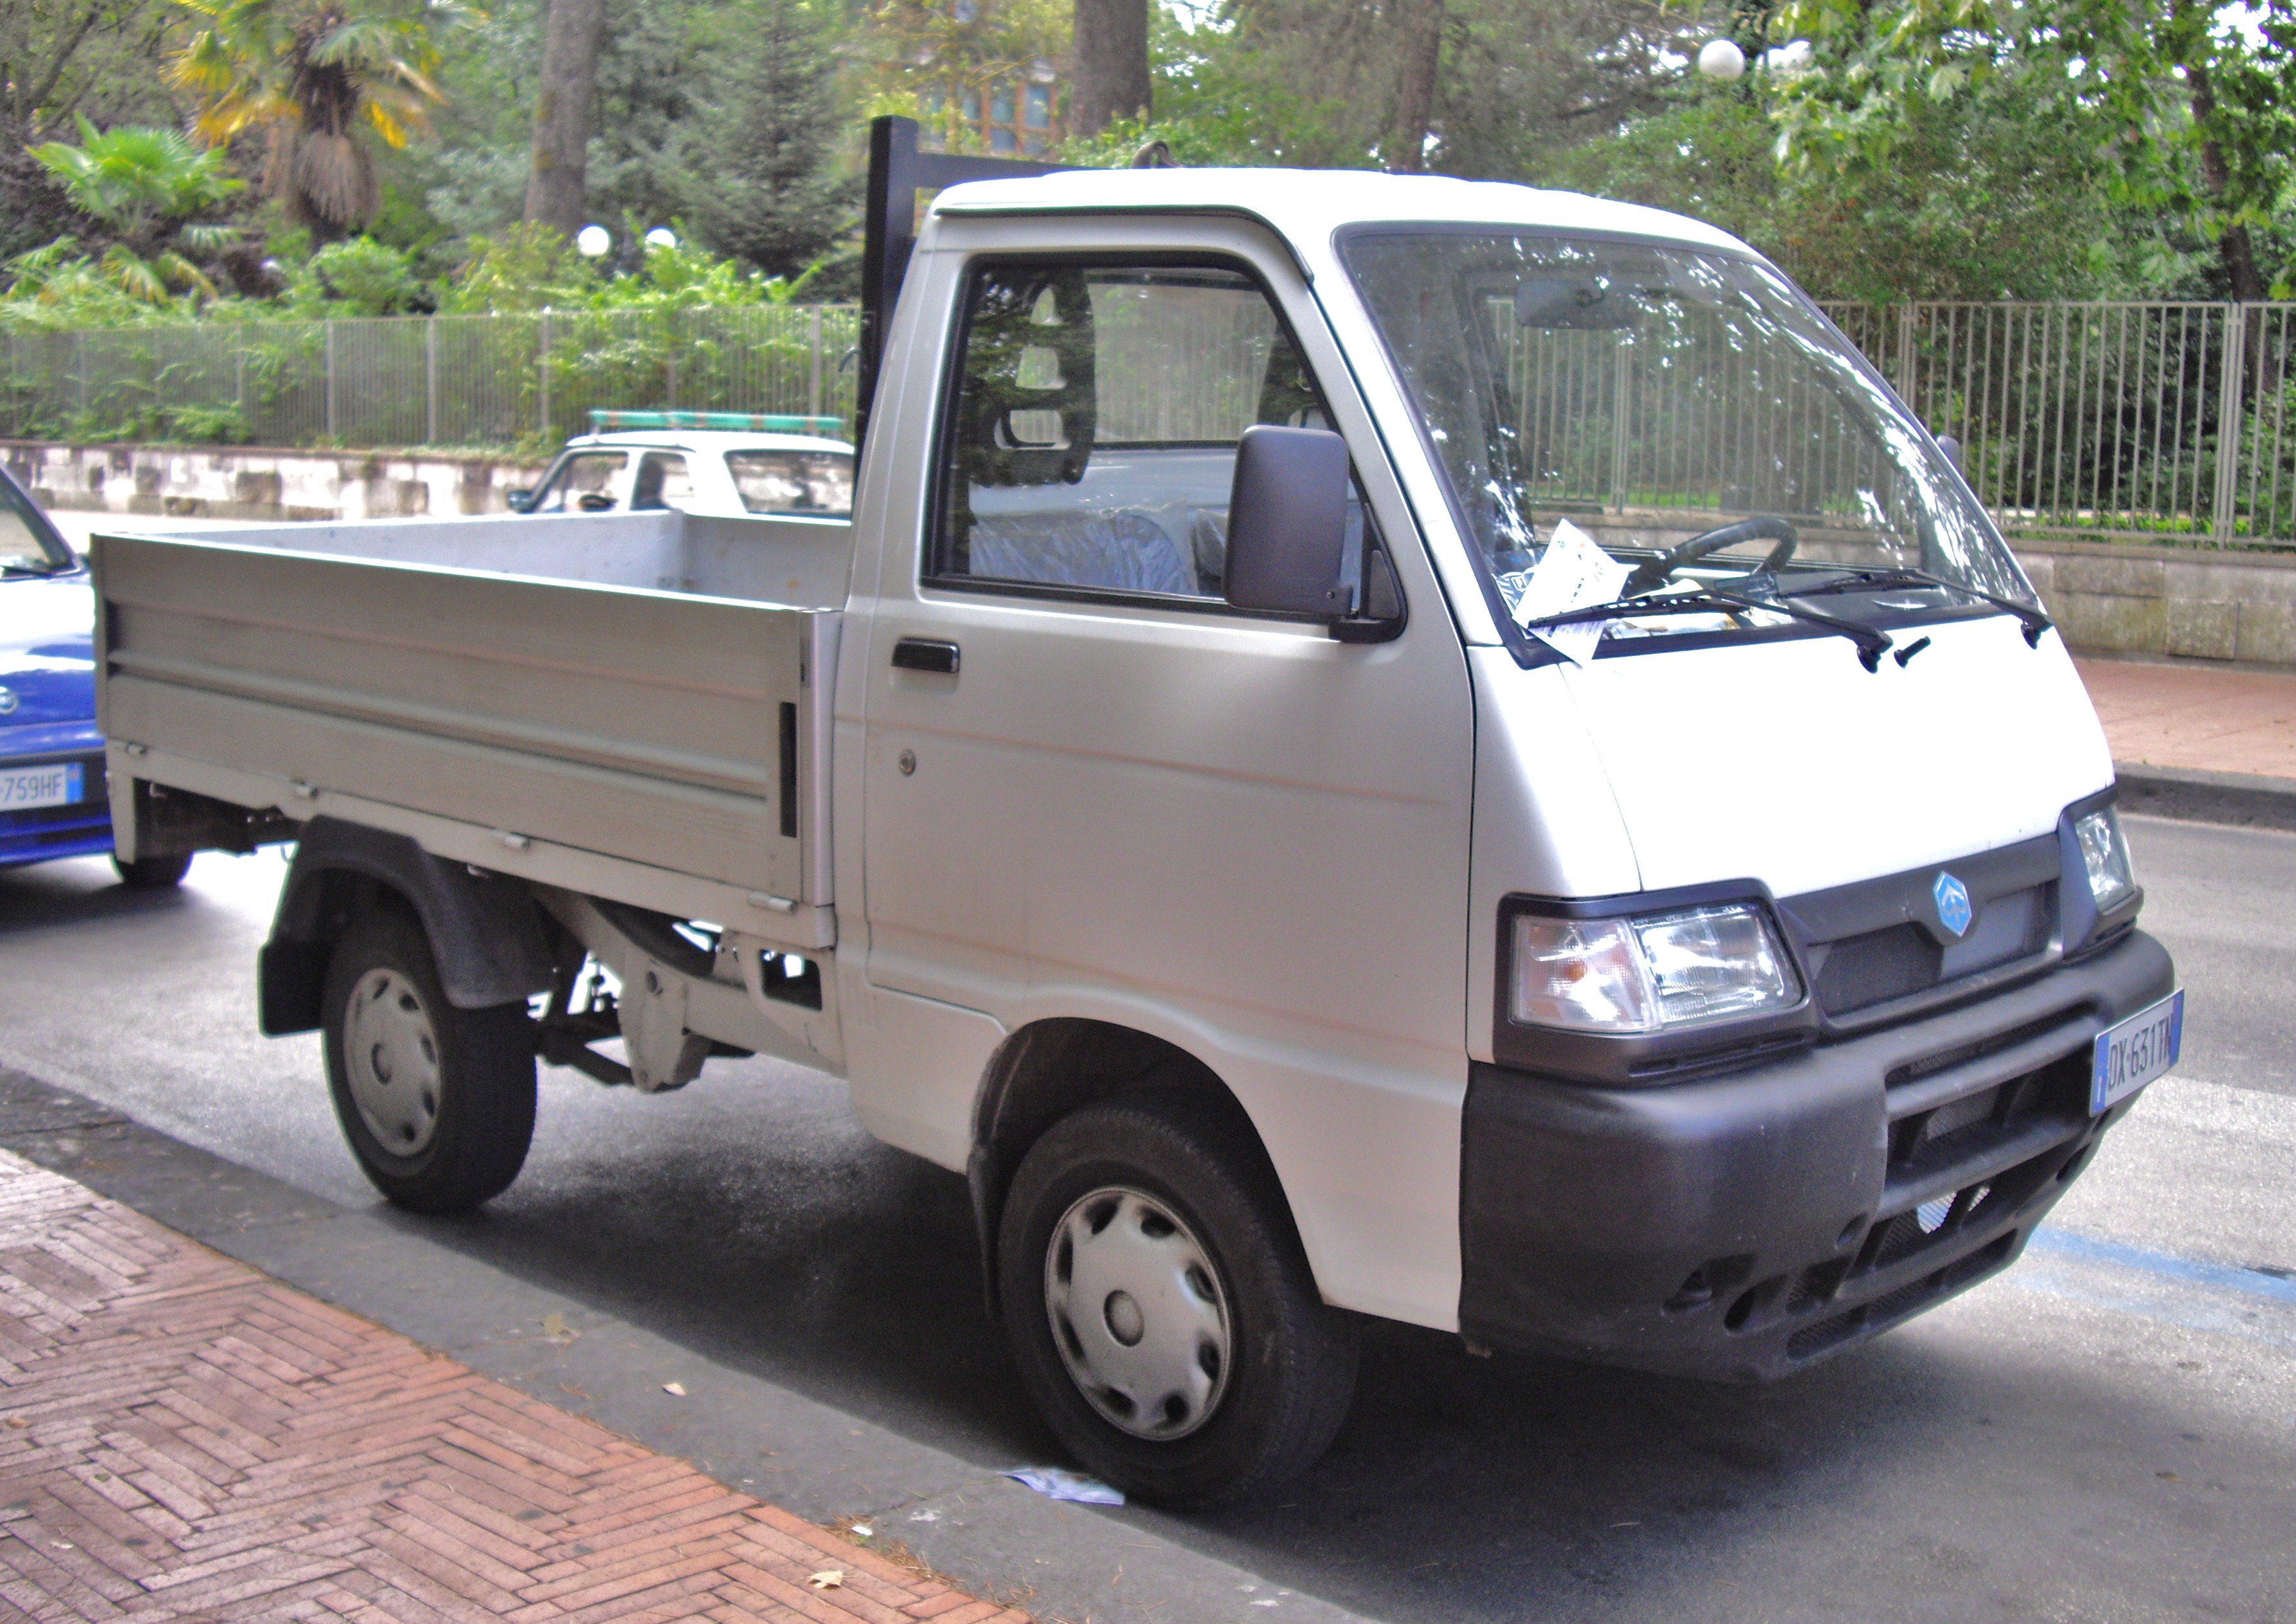 piaggio porter history, photos on better parts ltd